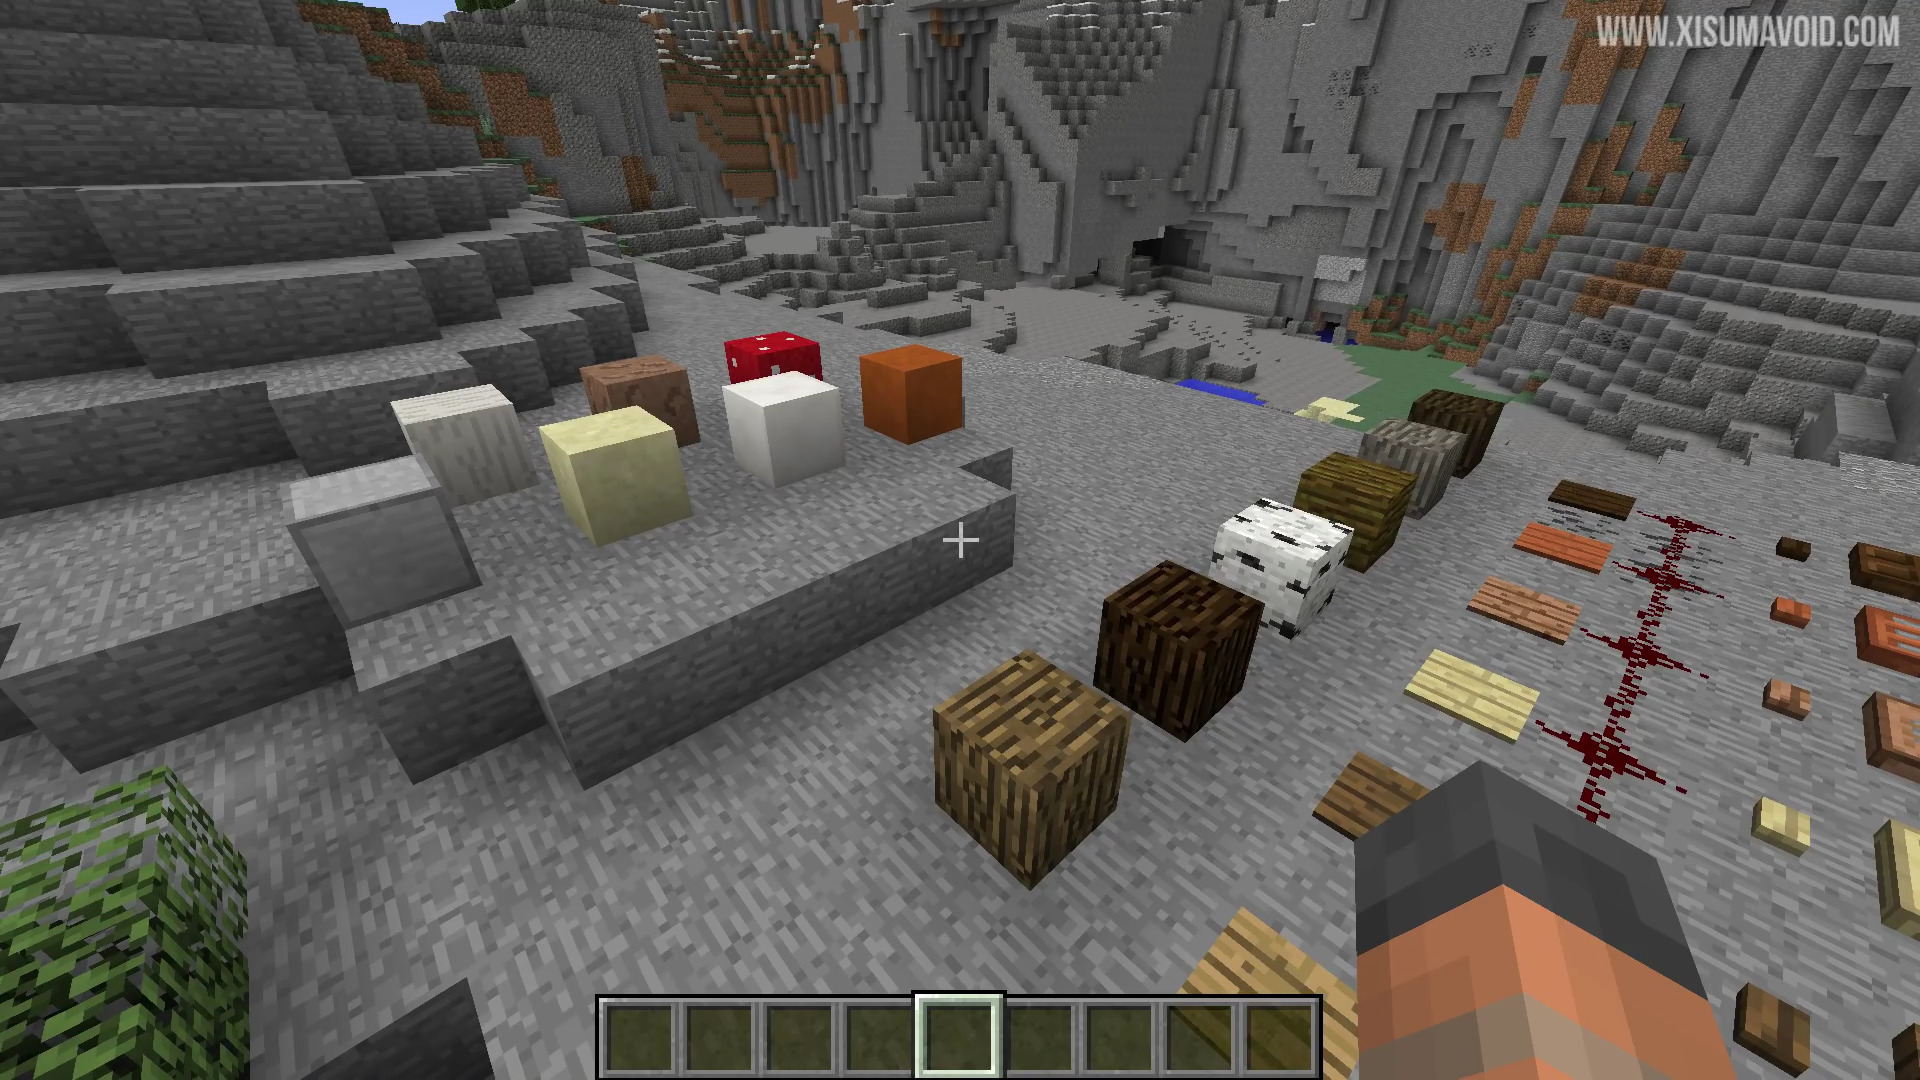 Minecraft 1.13 Snapshot 17w47a Screenshots 1